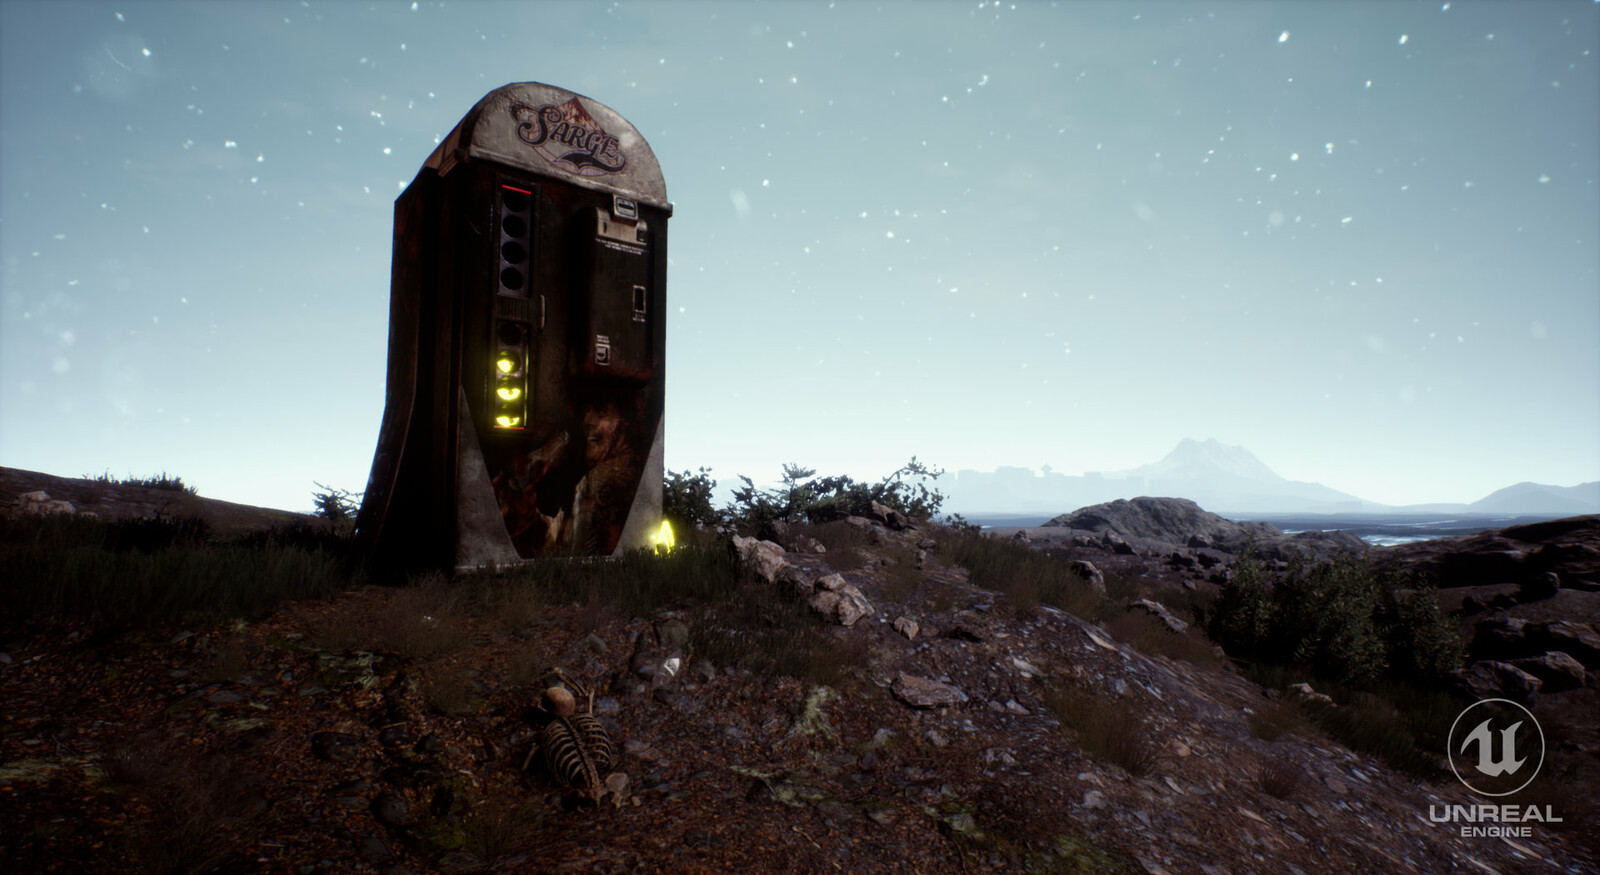 Old version of Sarge soda machine with more typography elements in Unreal Engine environment